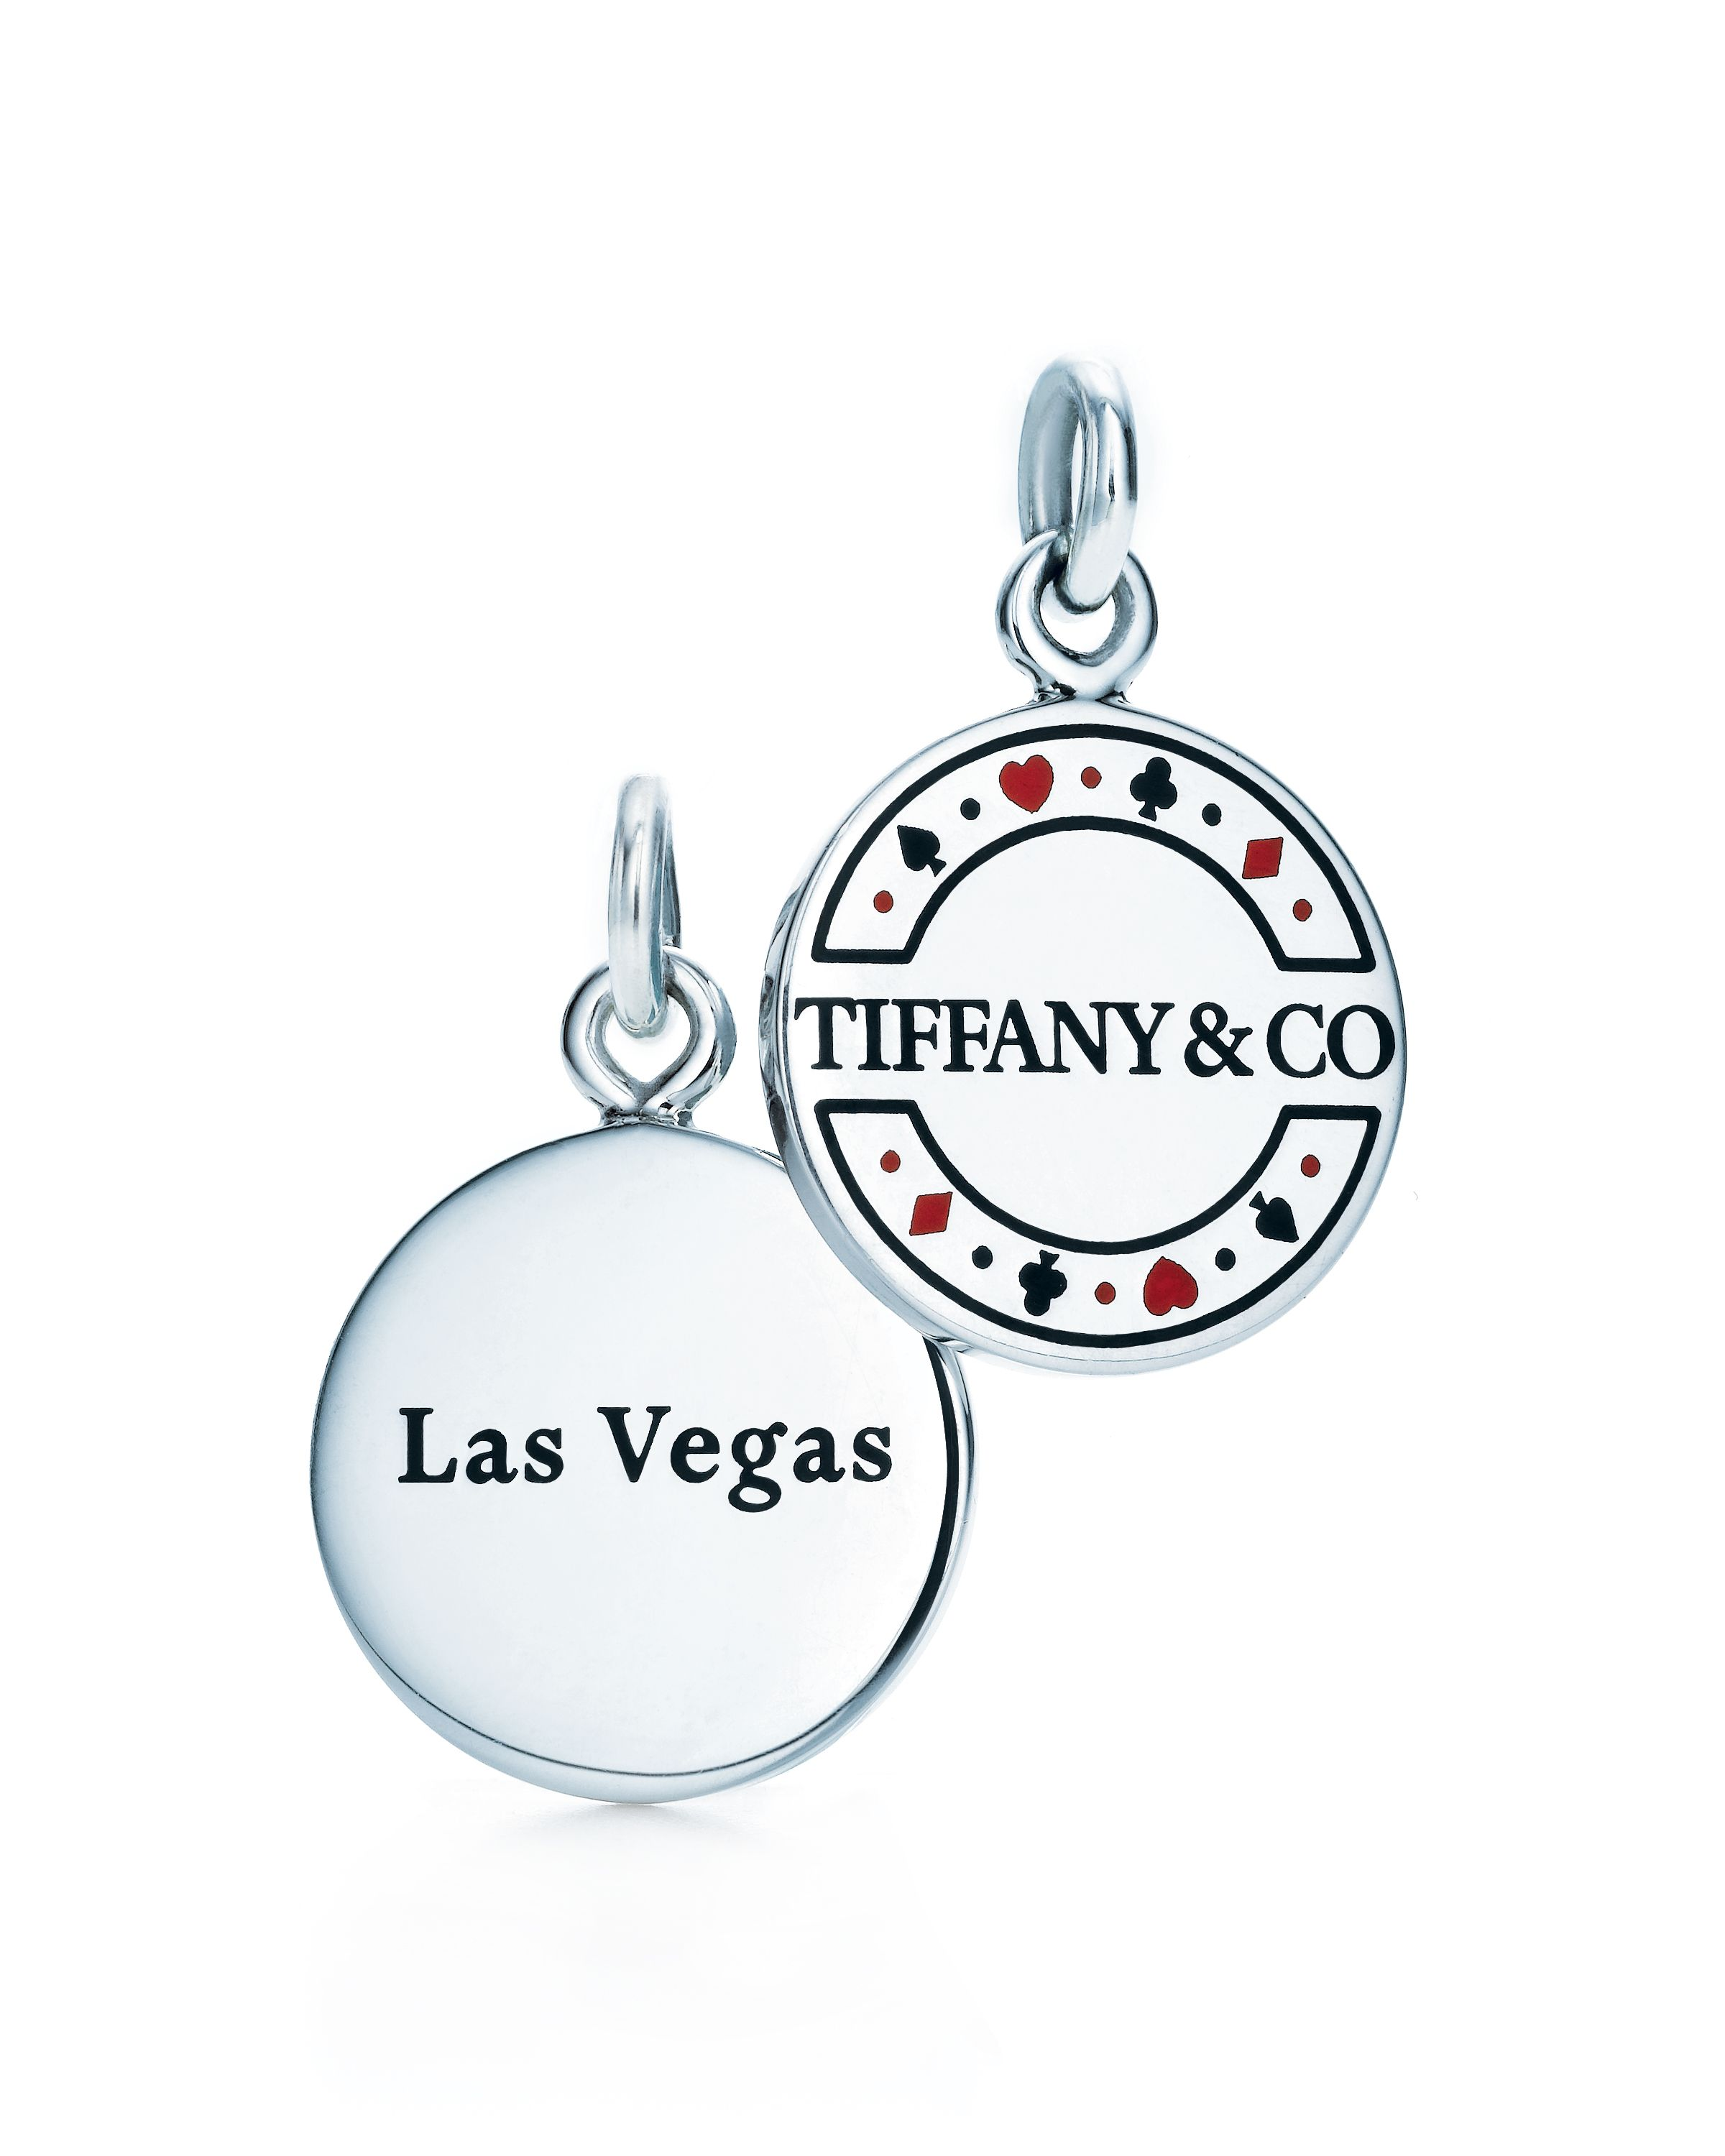 b02d2d690 My first charm (fittingly) - Las Vegas Tiffany & Co. Charm -- This would be  PERFECT for me. We had our honeymoon in Vegas!